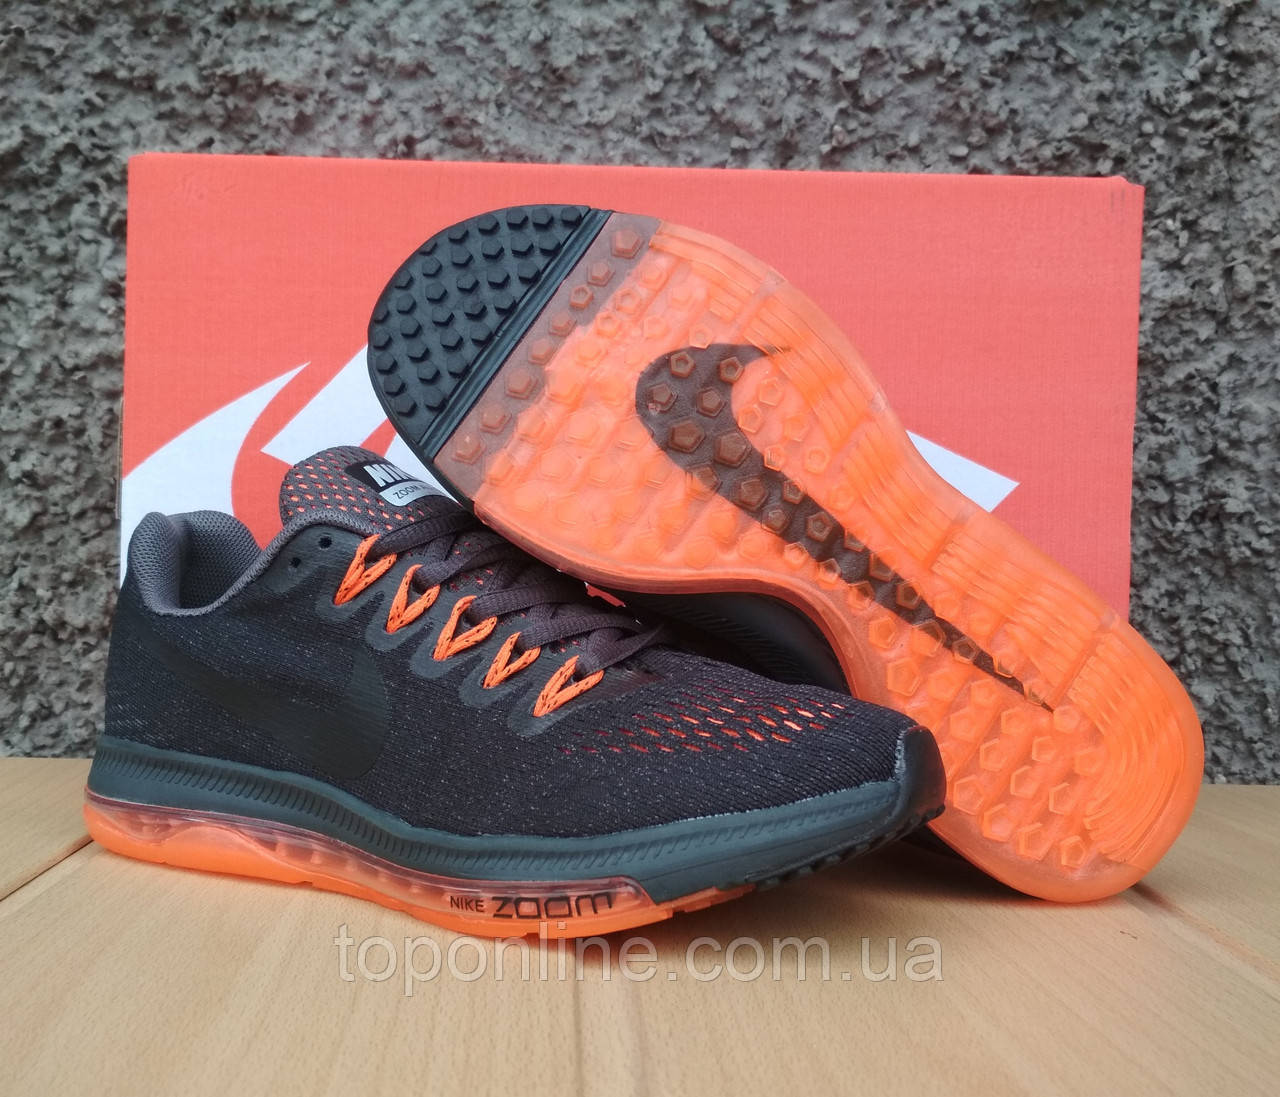 the best attitude 46f84 e483e Кроссовки женские в стиле Nike Zoom All Out Low grey orange